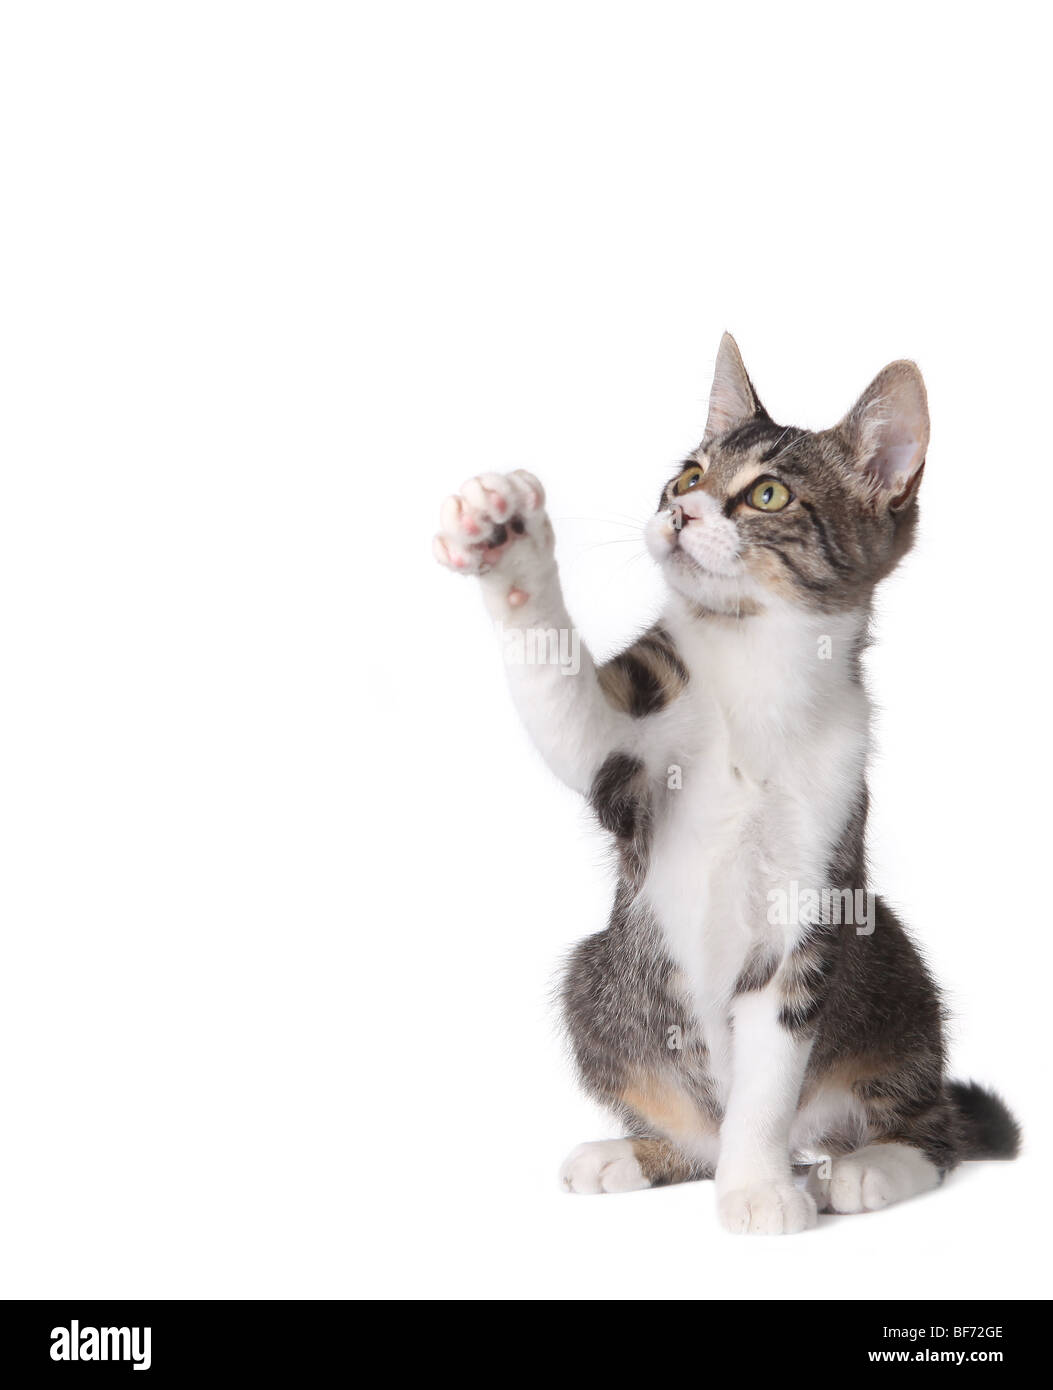 Cute Kitten Pawing at Something in the Air - Stock Image